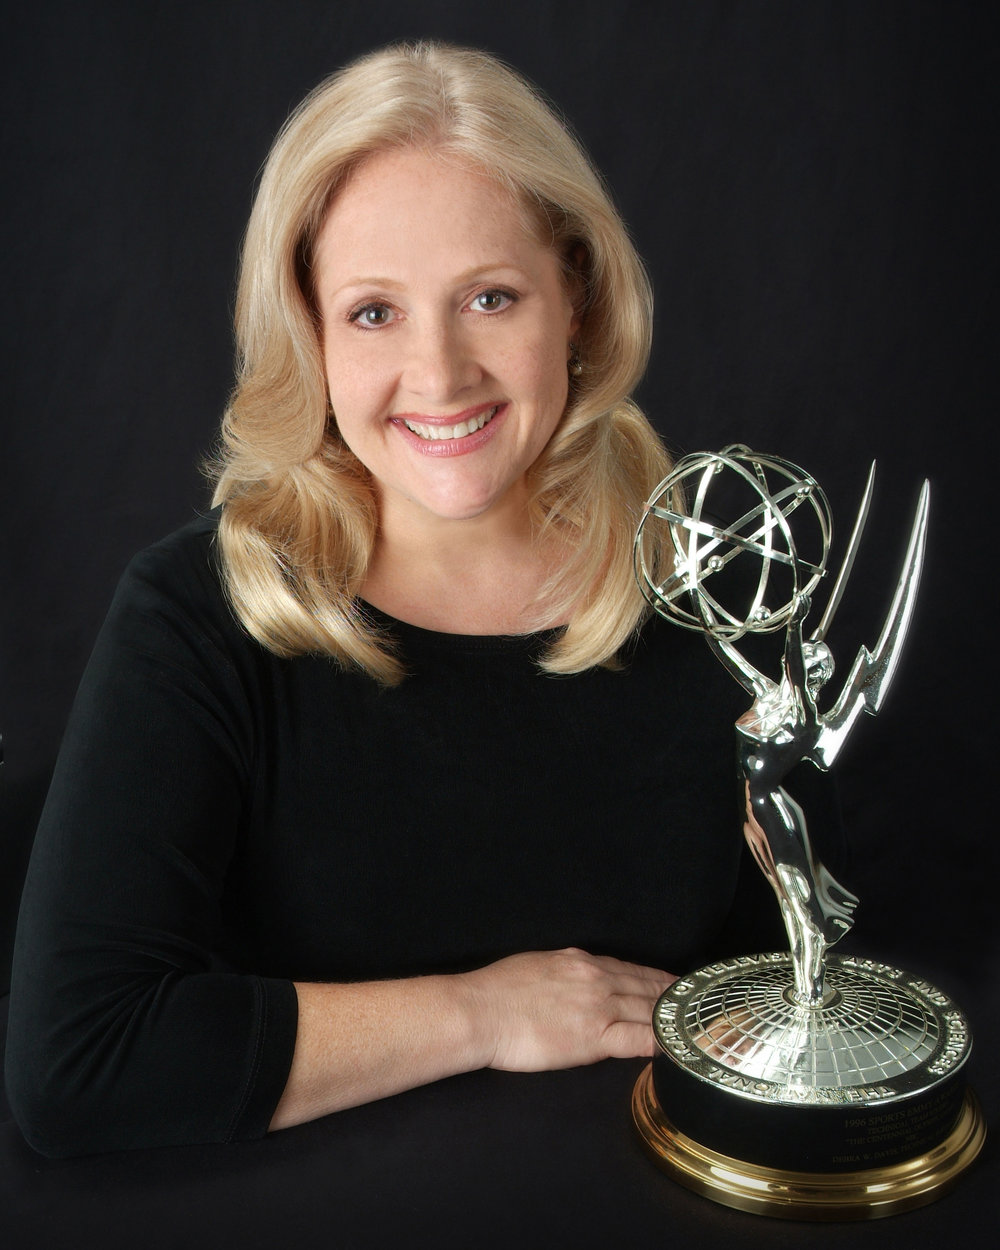 DEBRA DAVIS IS AN EMMY AWARD WINNING PRODUCER, CREATING GROUNDBREAKING MEDIA SOLUTIONS AT HIGH PROFILE EVENTS FOR BROADCAST AND IPTV.  SHE SPECIALIZES IN LIVE EVENTS, FESTIVALS, LIVE MUSIC, TELEVISION SERIES, AWARD SHOWS, CORPORATE ENTERTAINMENT, MEETINGS AND GALAS. -